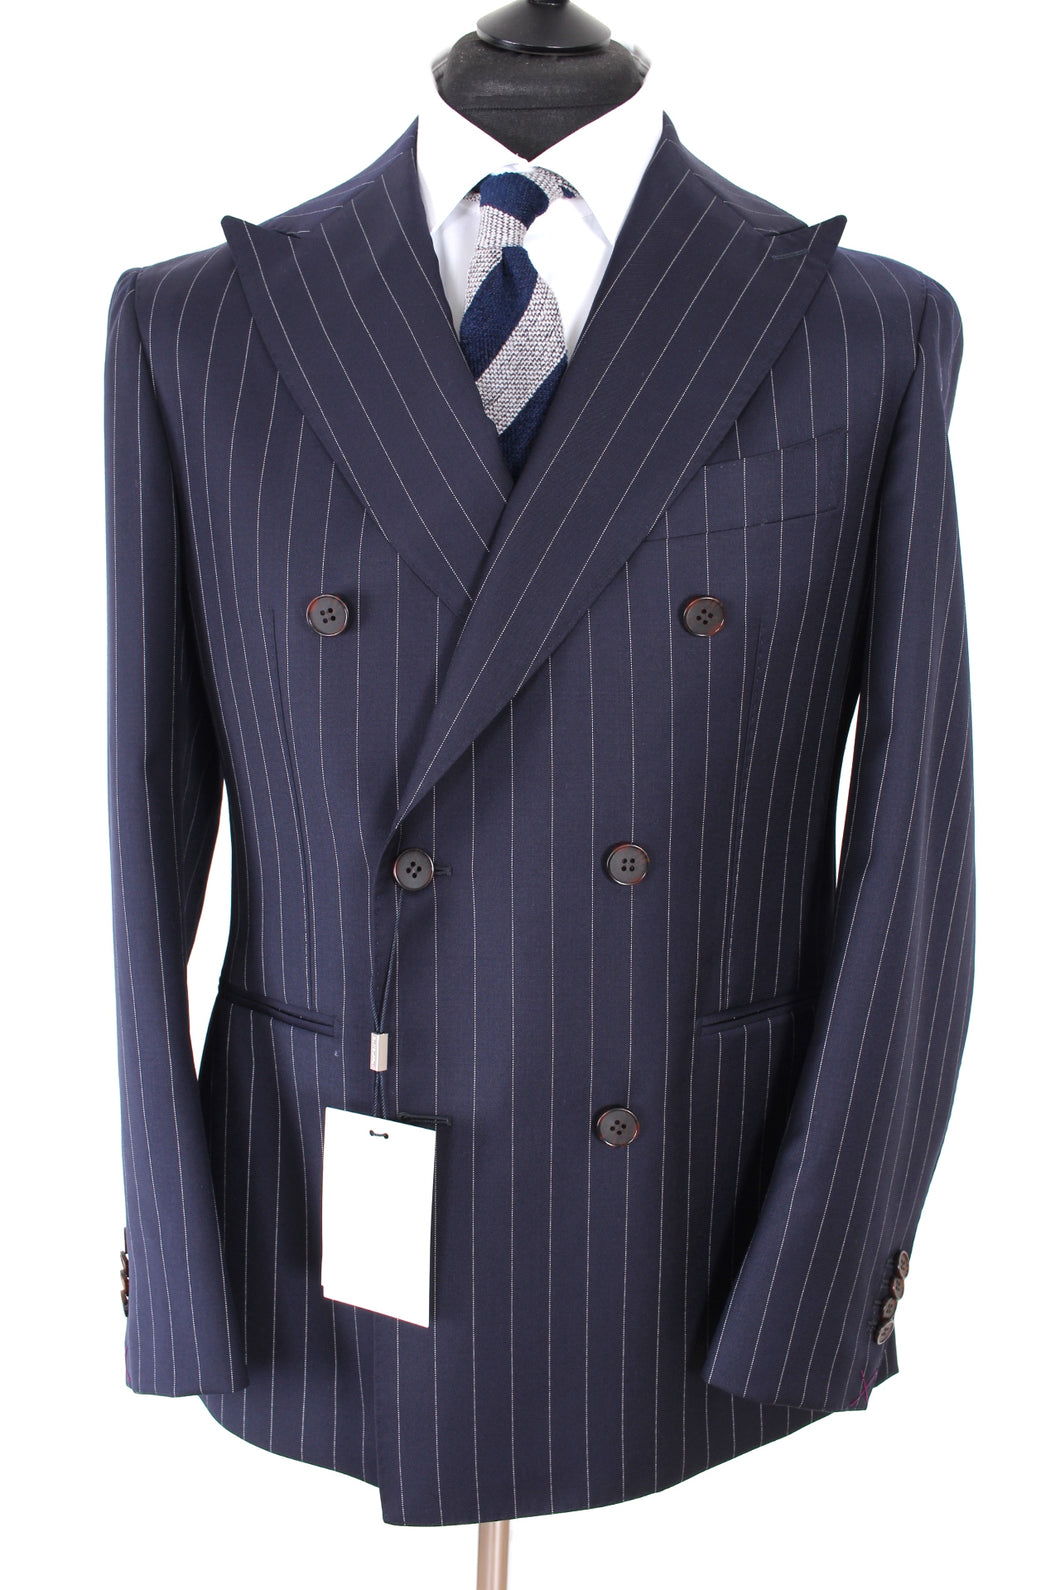 NWT Suitsupply Havana Navy Blue Pinstripe 100% Wool DB Suit - Size 34R and 40R